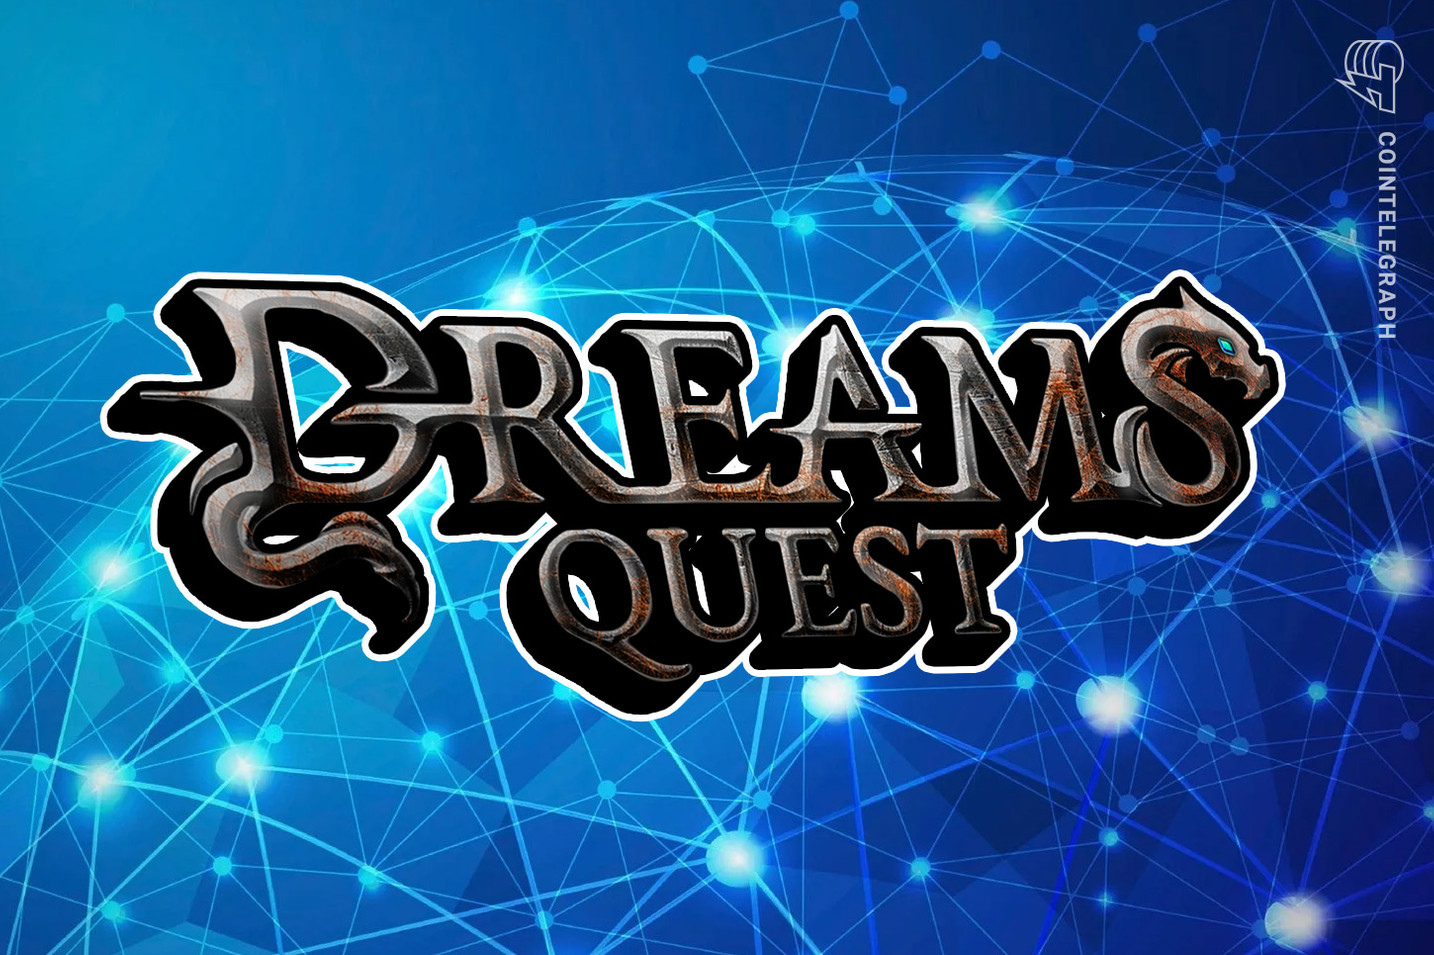 Dreams Quest debut on Binance NFT marketplace and teaser video release